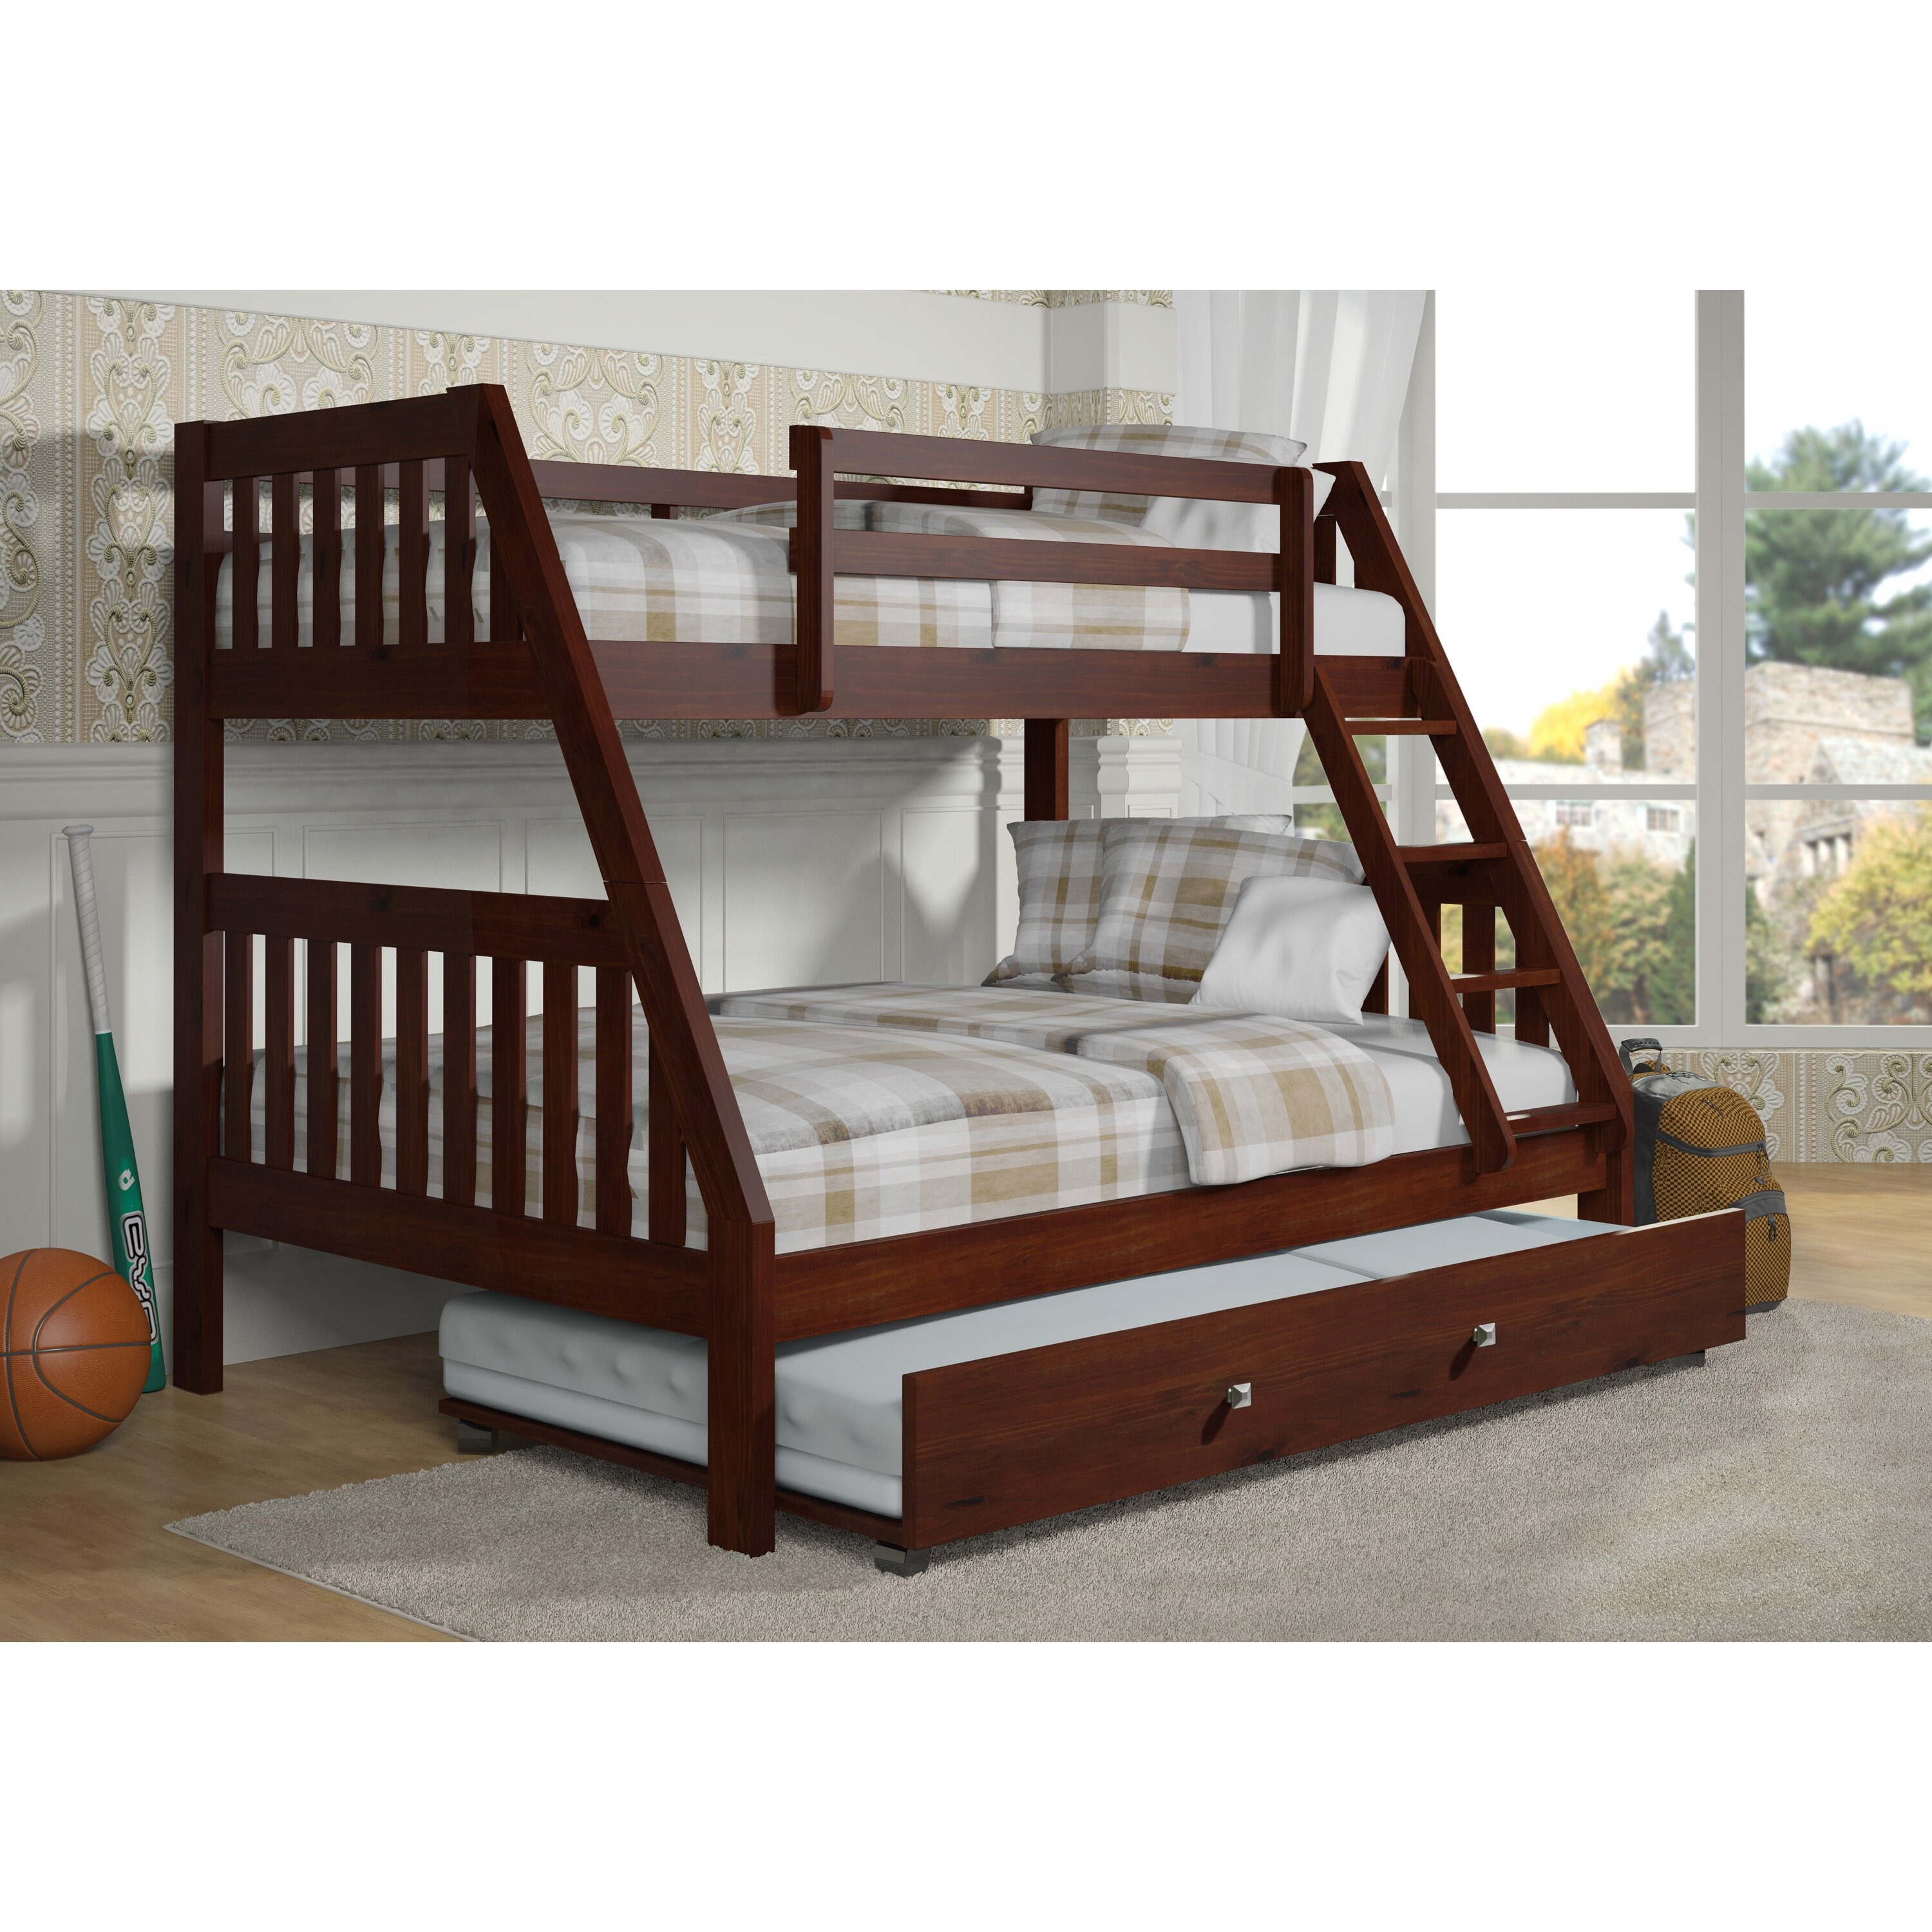 Donco kids washington twin over full bunk bed with trundle for Loft bed with trundle